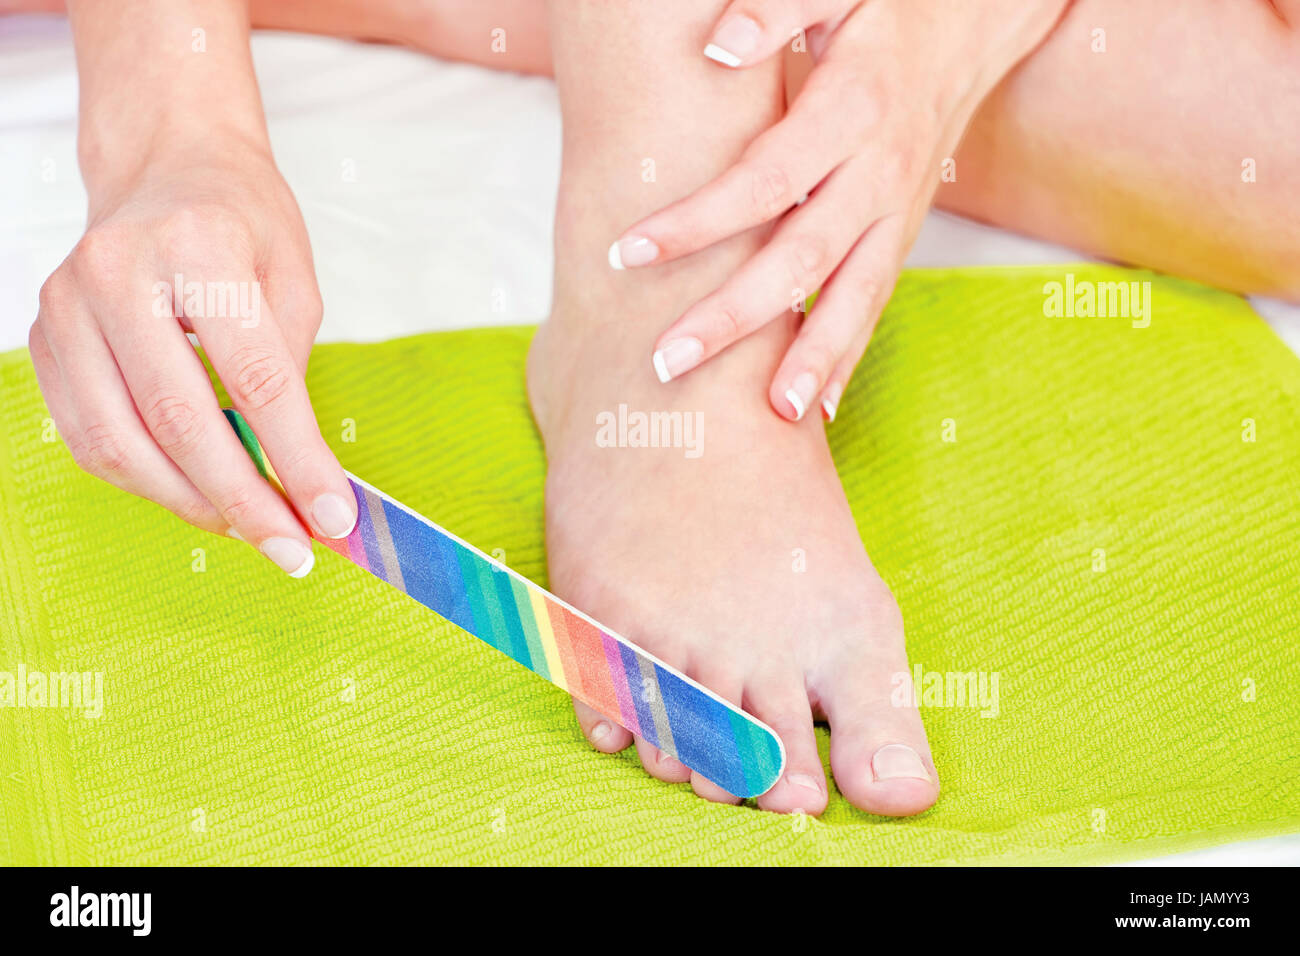 feet beauty treatment with nail file Stock Photo: 144290471 - Alamy